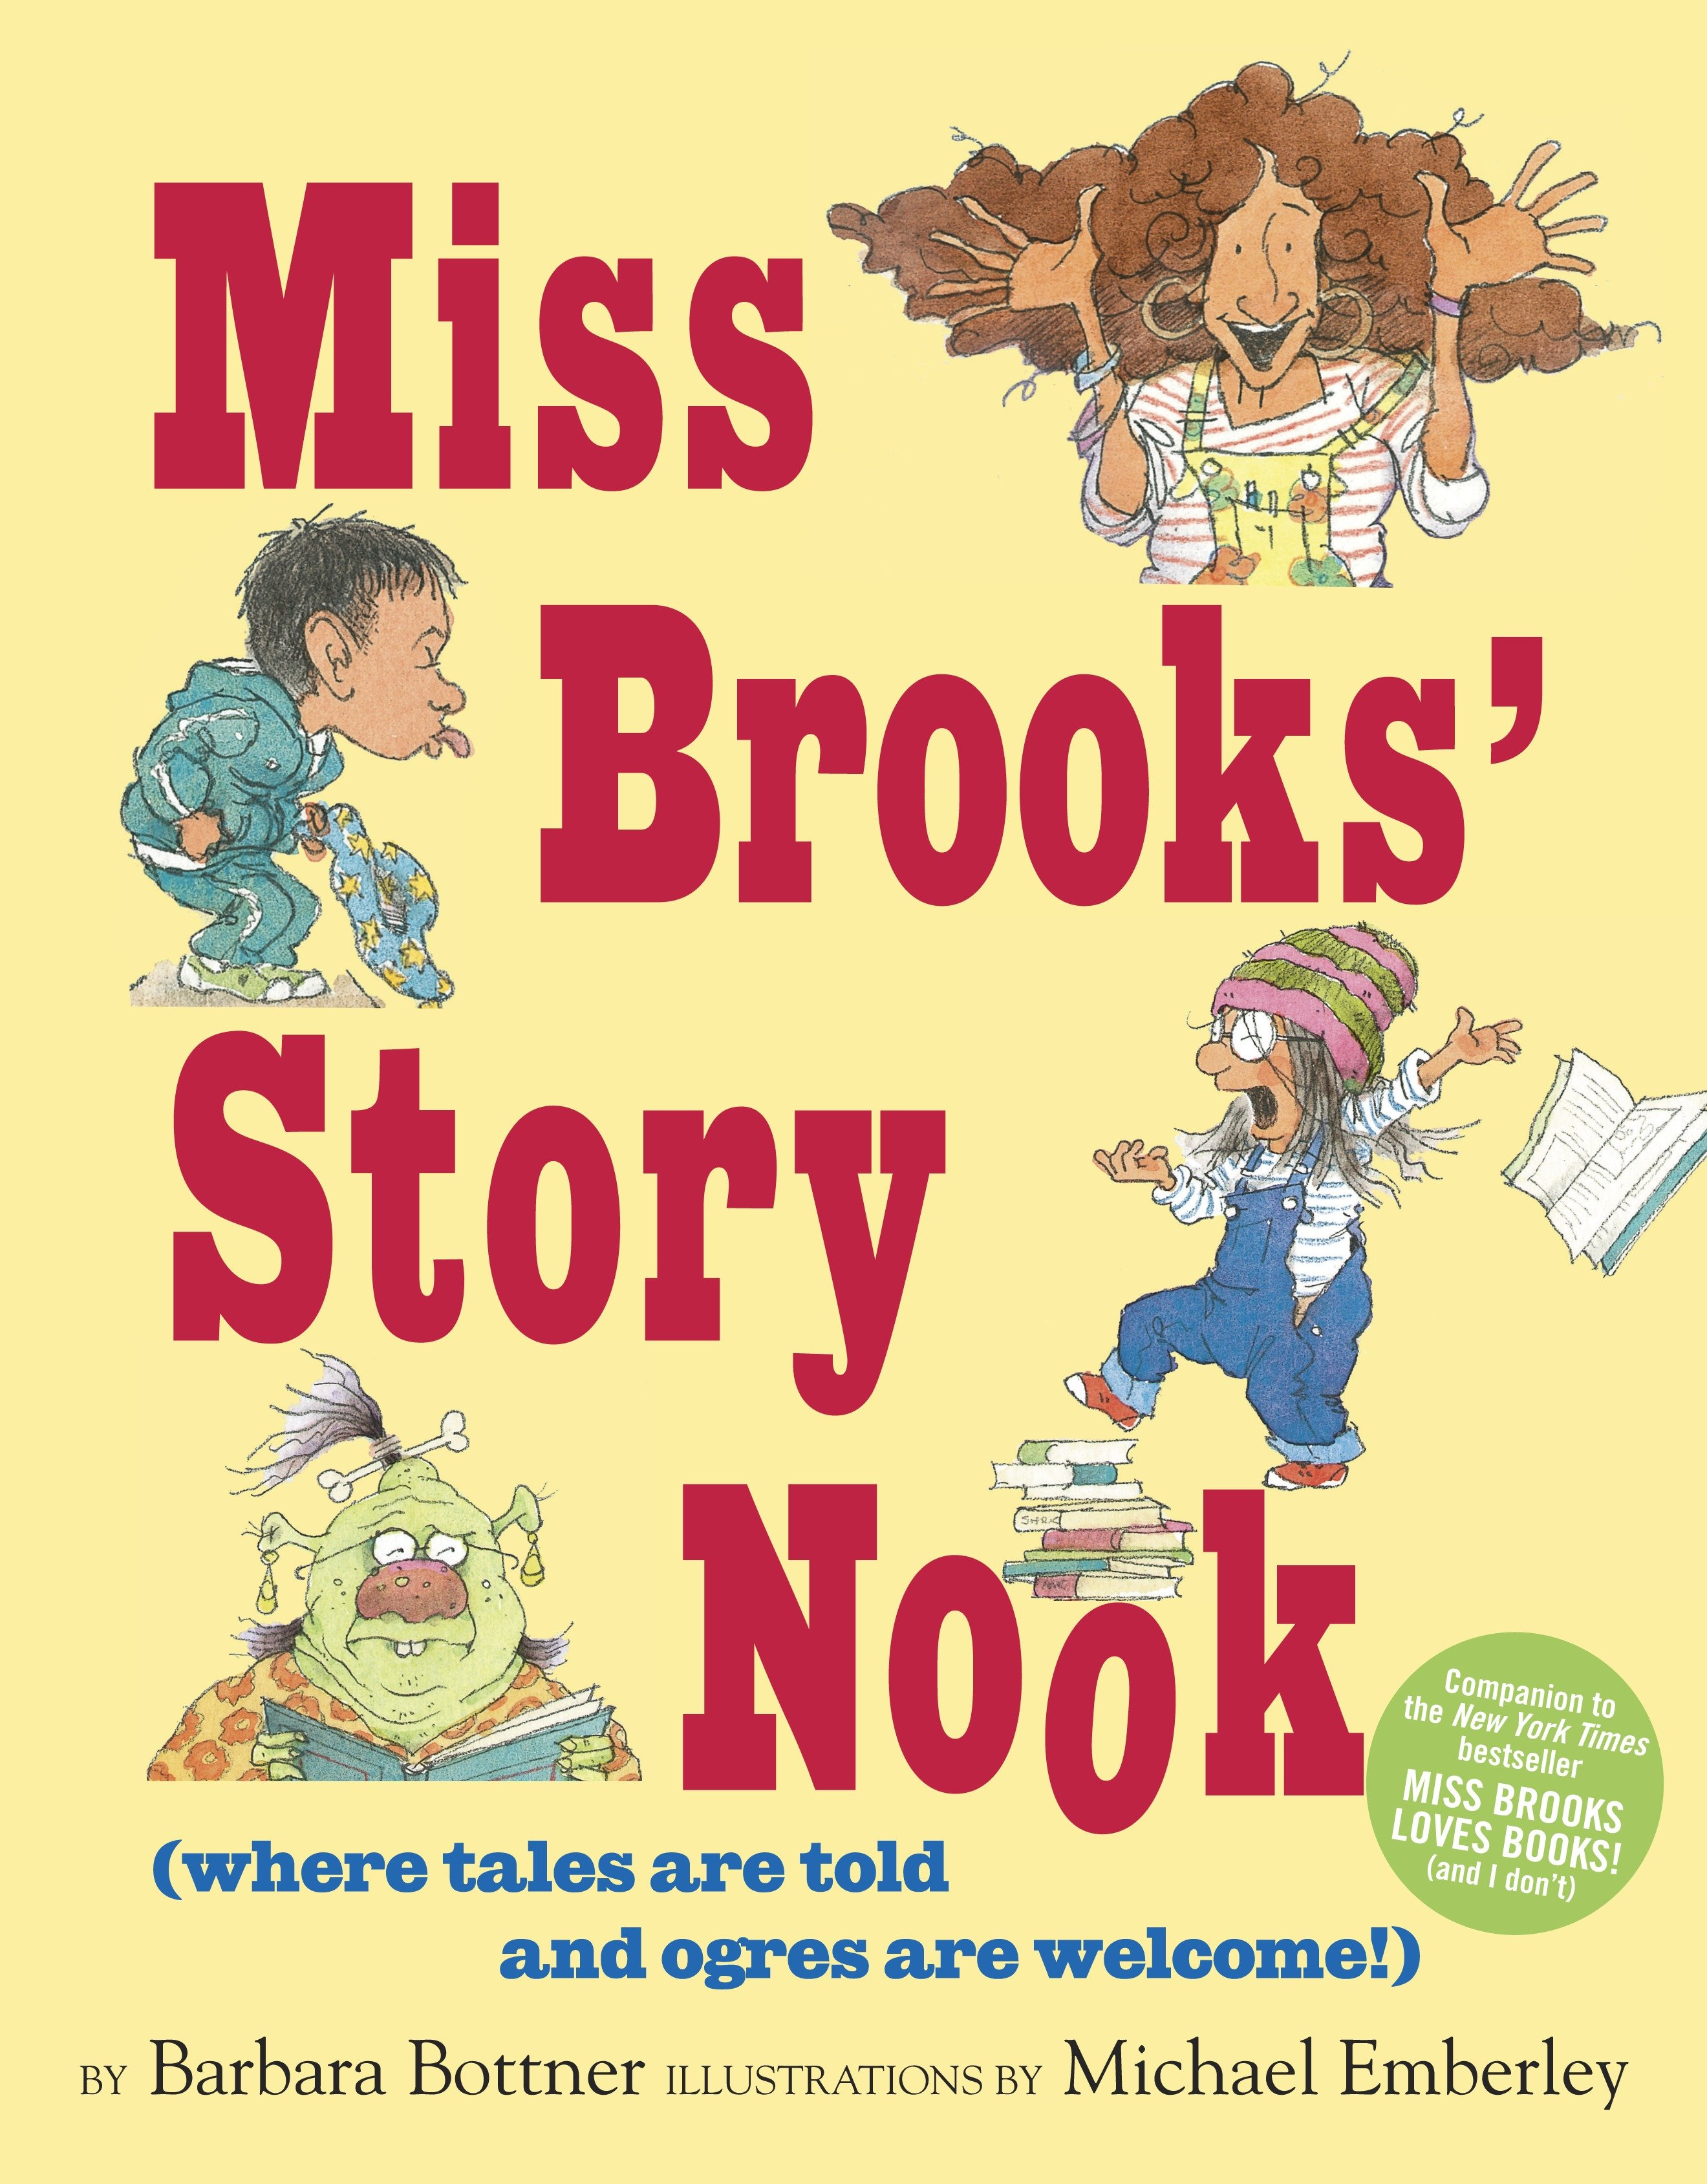 Miss Brooks' story nook (where tales are told and ogres are welcome) cover image